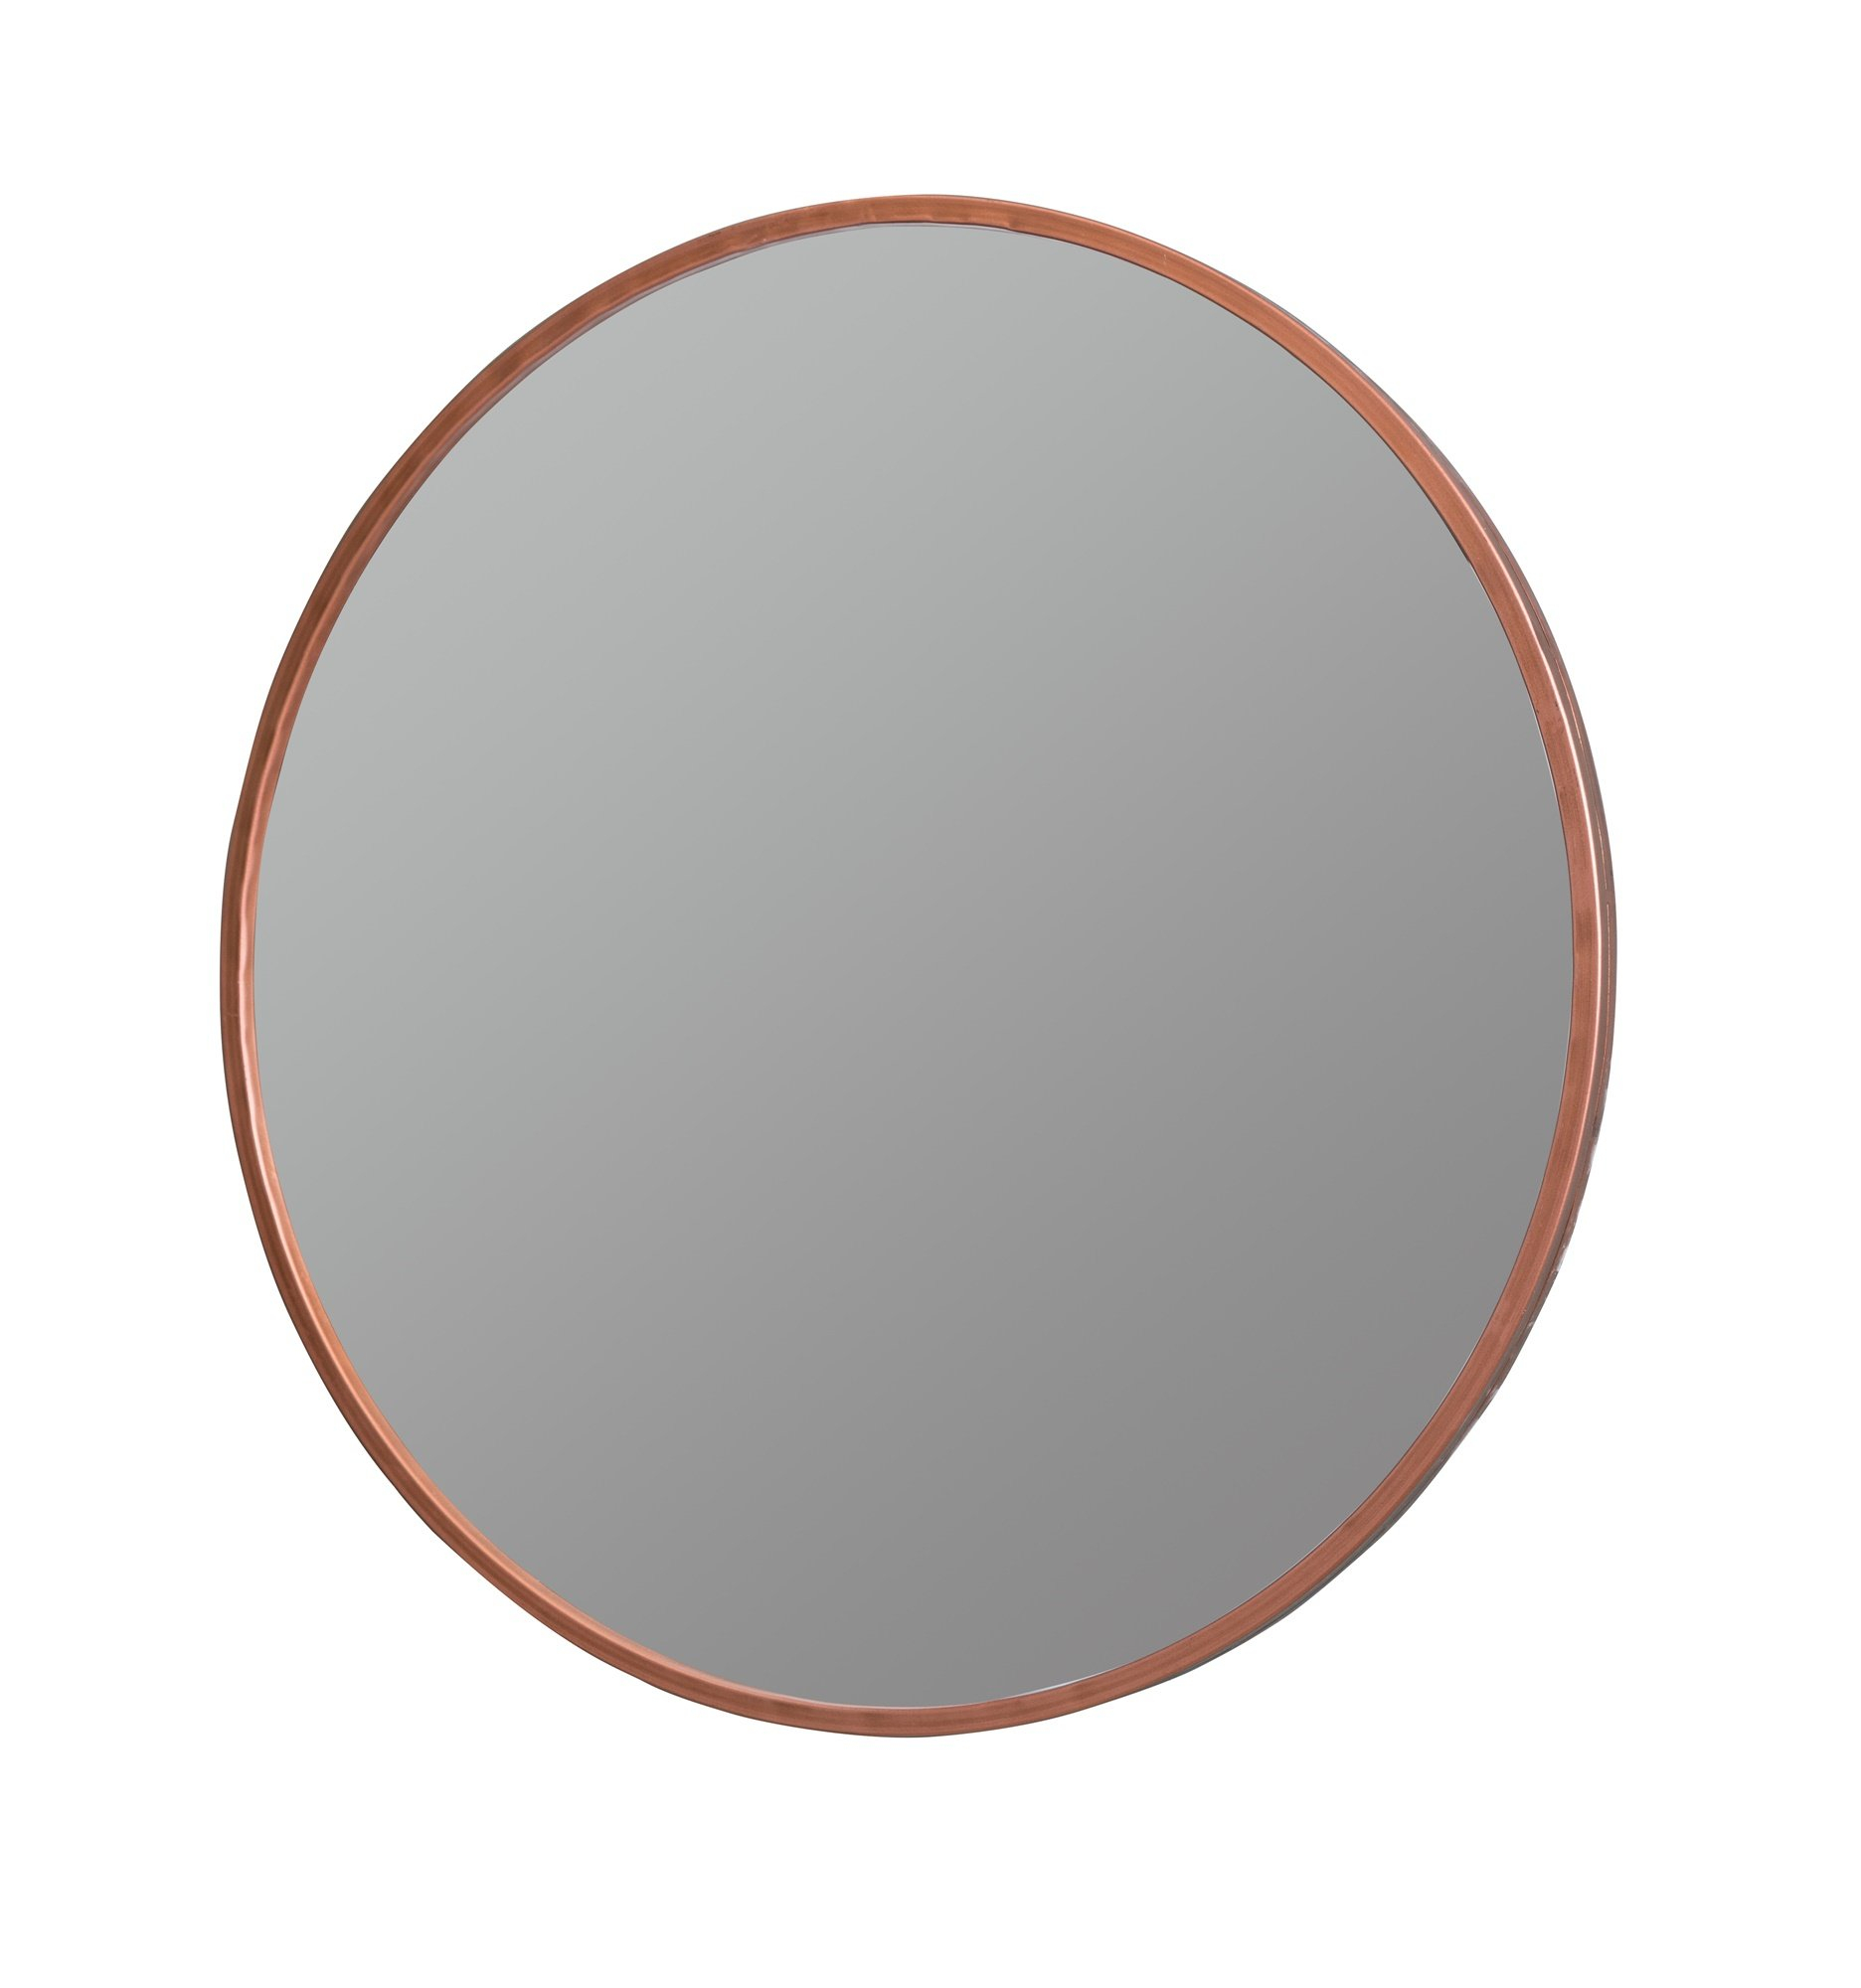 Modern & Contemporary Accent Mirror Intended For Levan Modern & Contemporary Accent Mirrors (View 10 of 20)